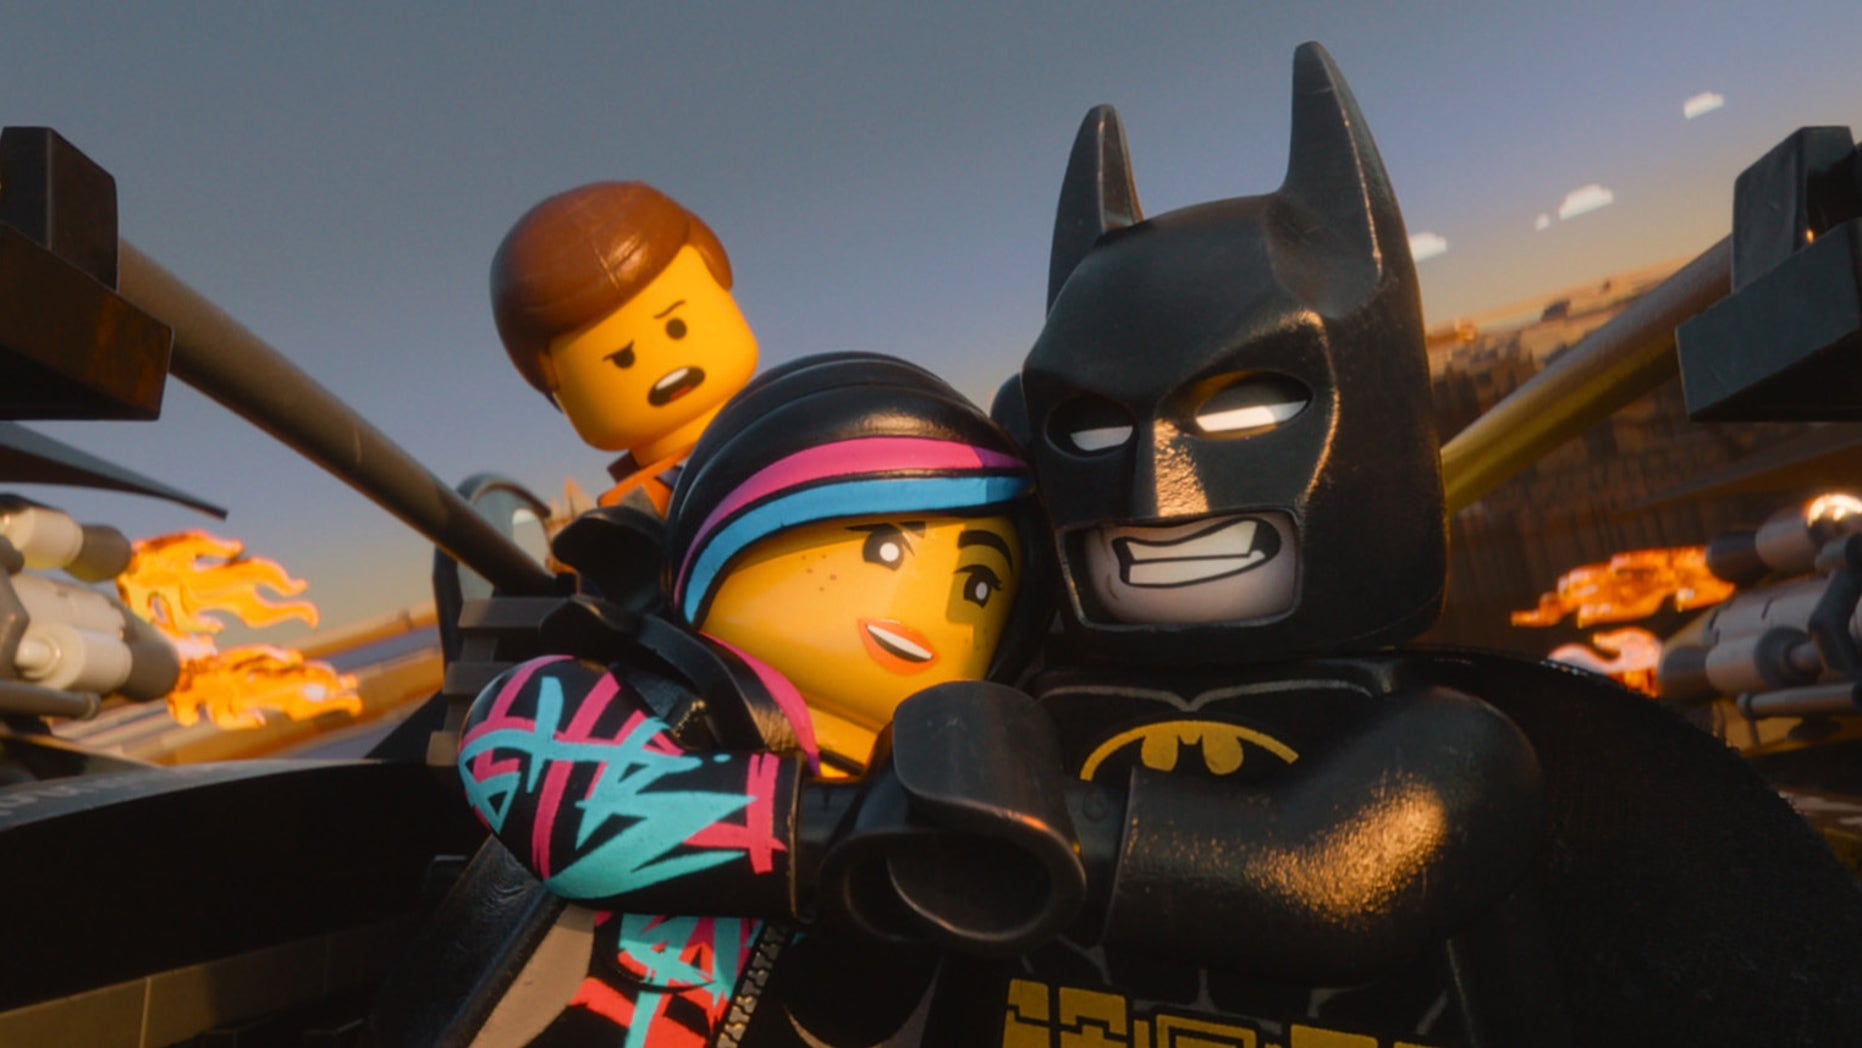 """This image released by Warner Bros. Pictures shows characters, from left, Emmet, voiced by Chris Pratt, Wyldstyle, voiced by Elizabeth Banks and Batman, voiced by Will Arnett, in a scene from """"The Lego Movie."""""""